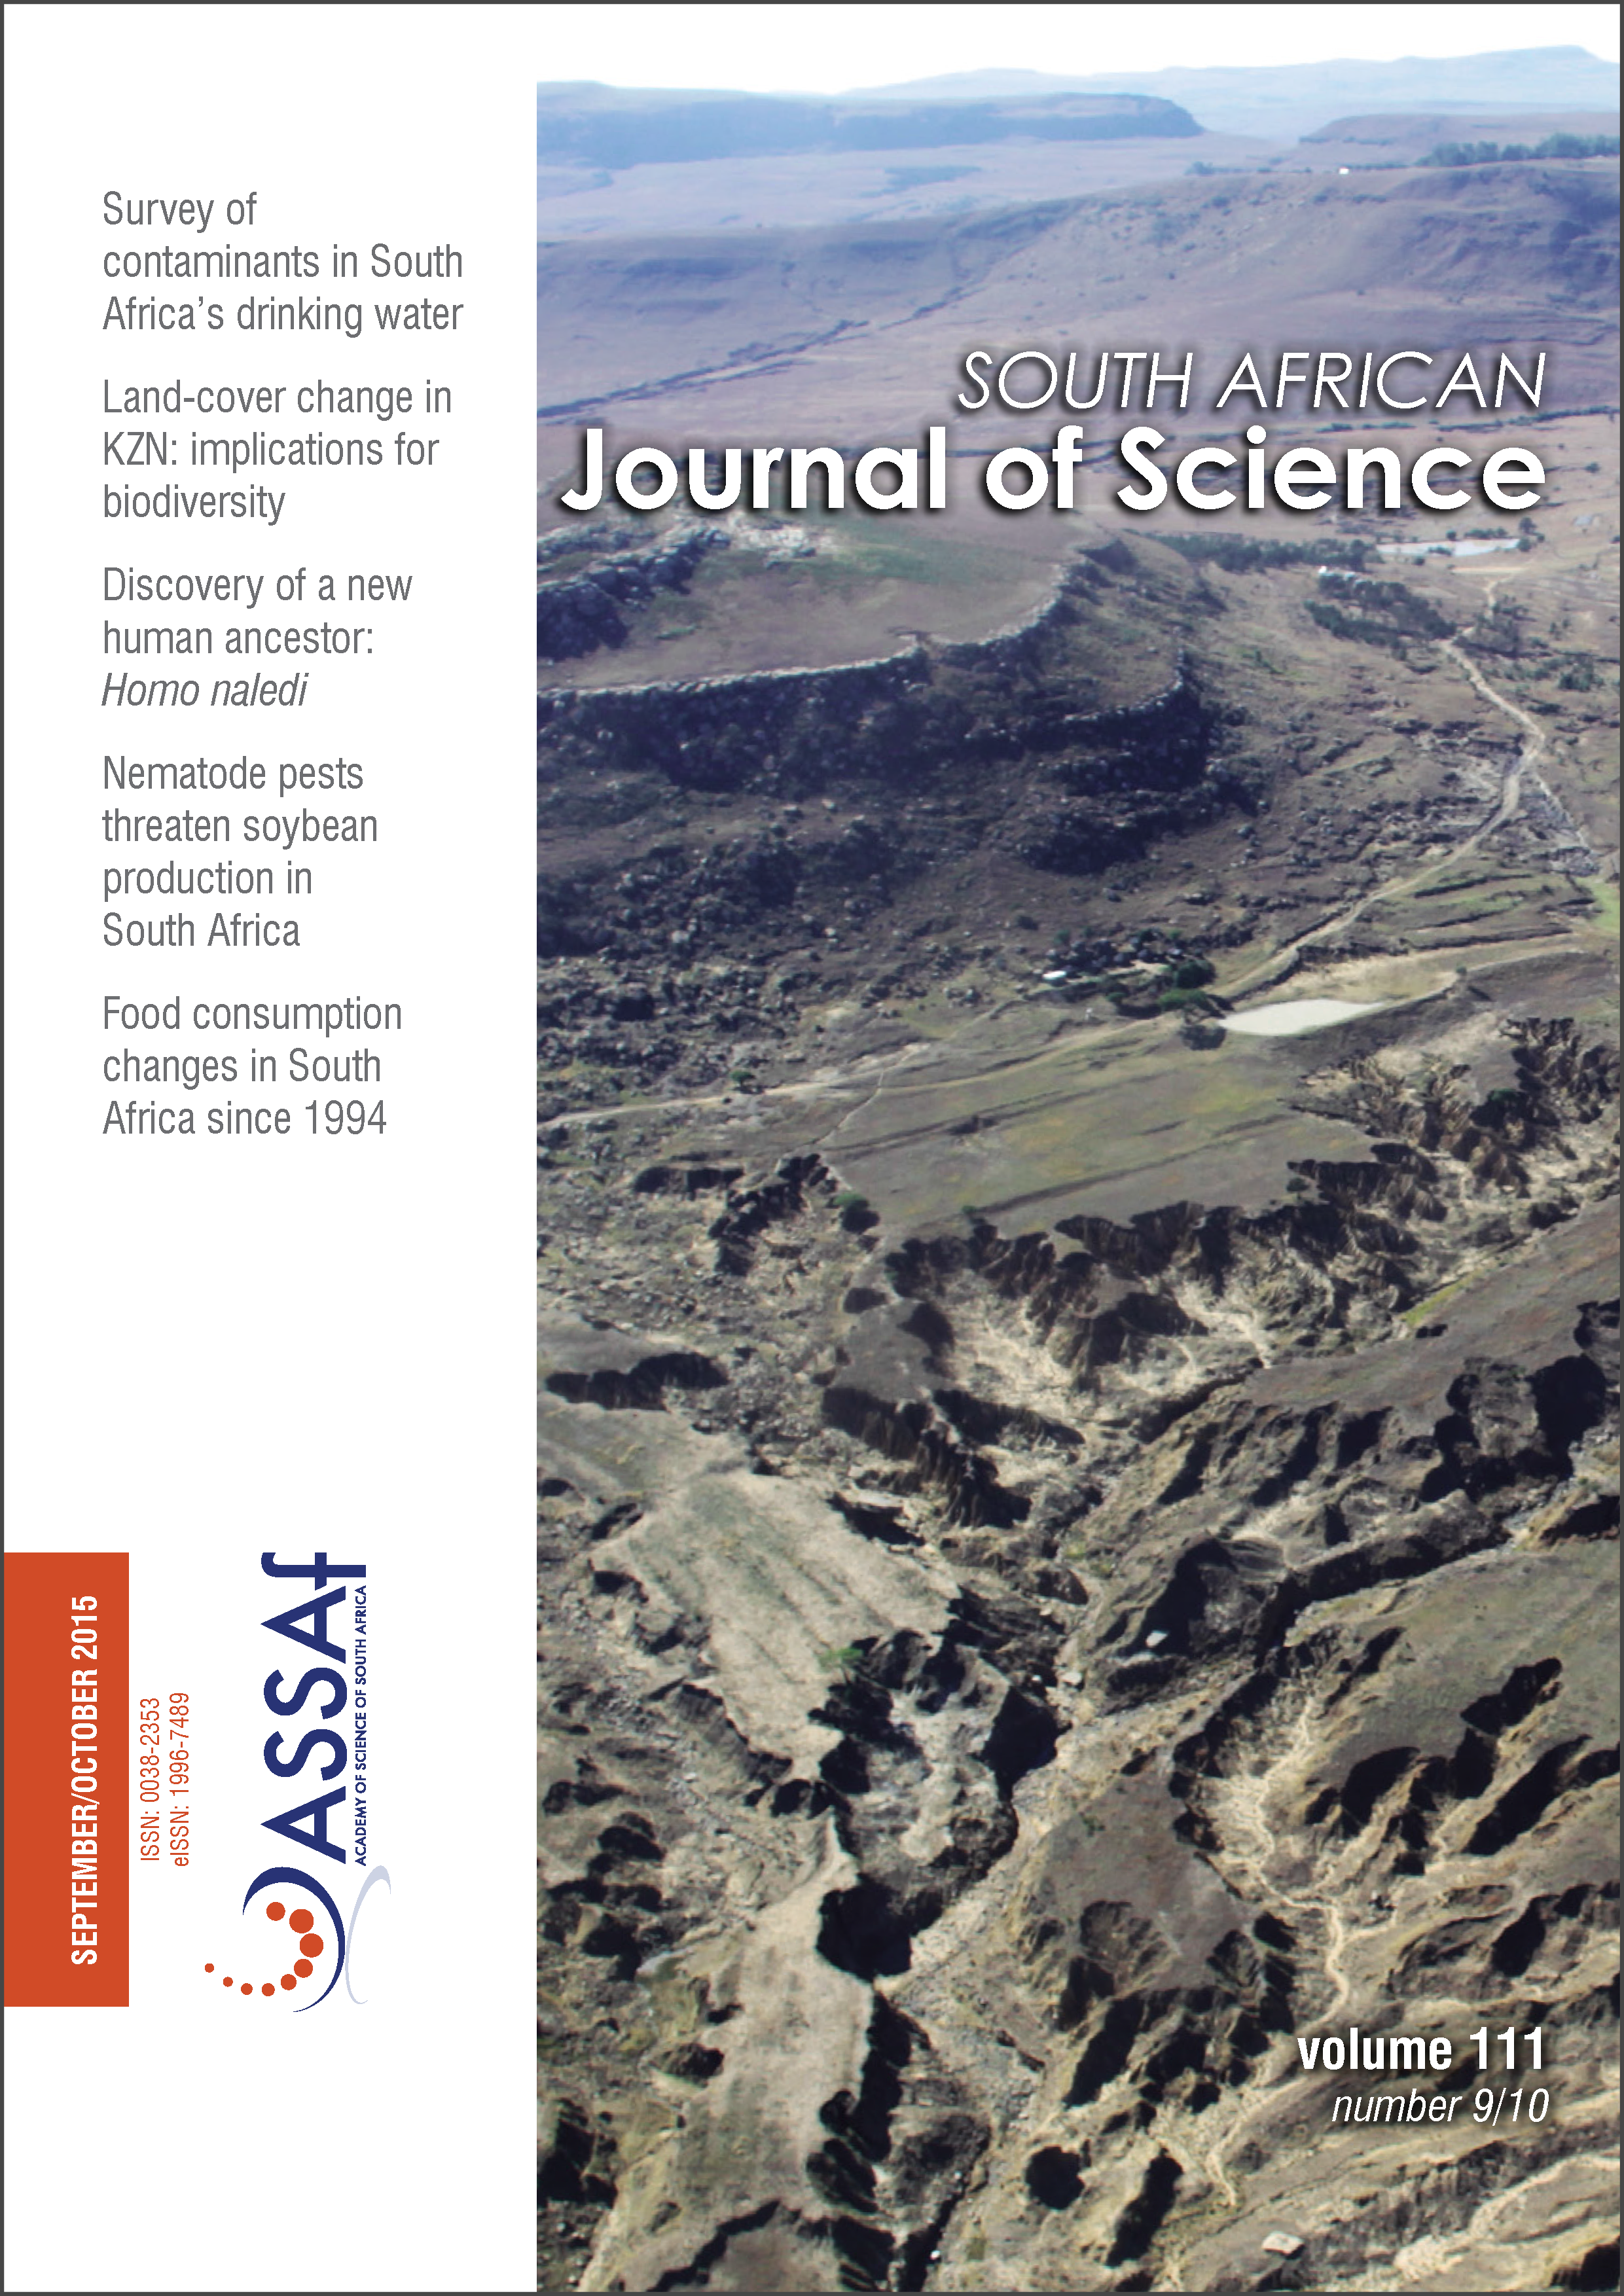 View Vol. 111 No. 9/10 (2015): South African Journal of Science